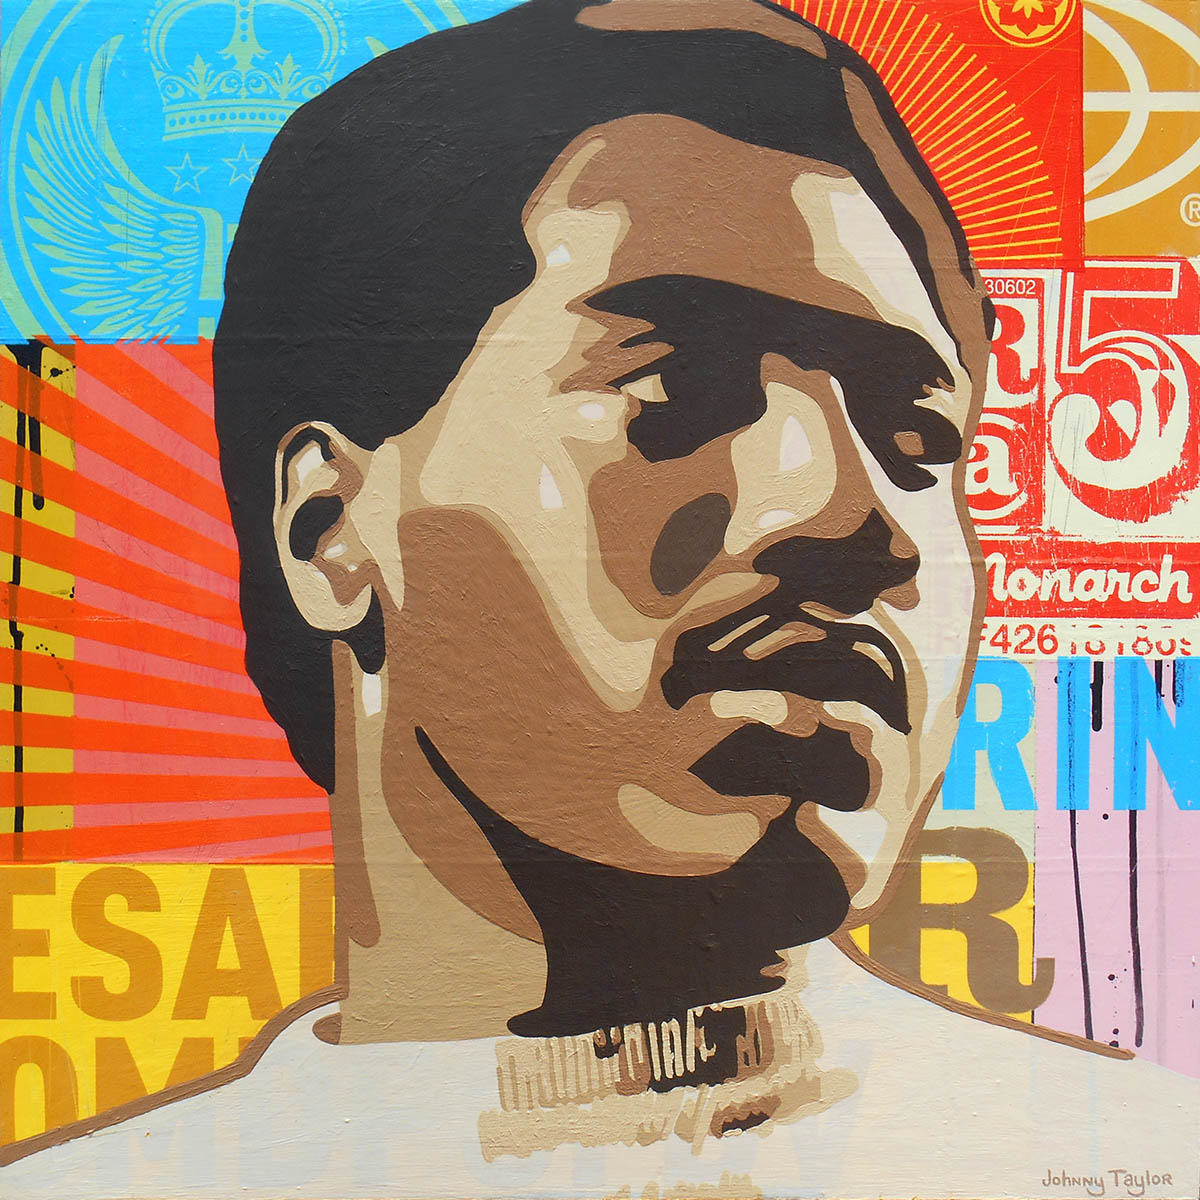 Otis Redding portrait by Johnny Taylor